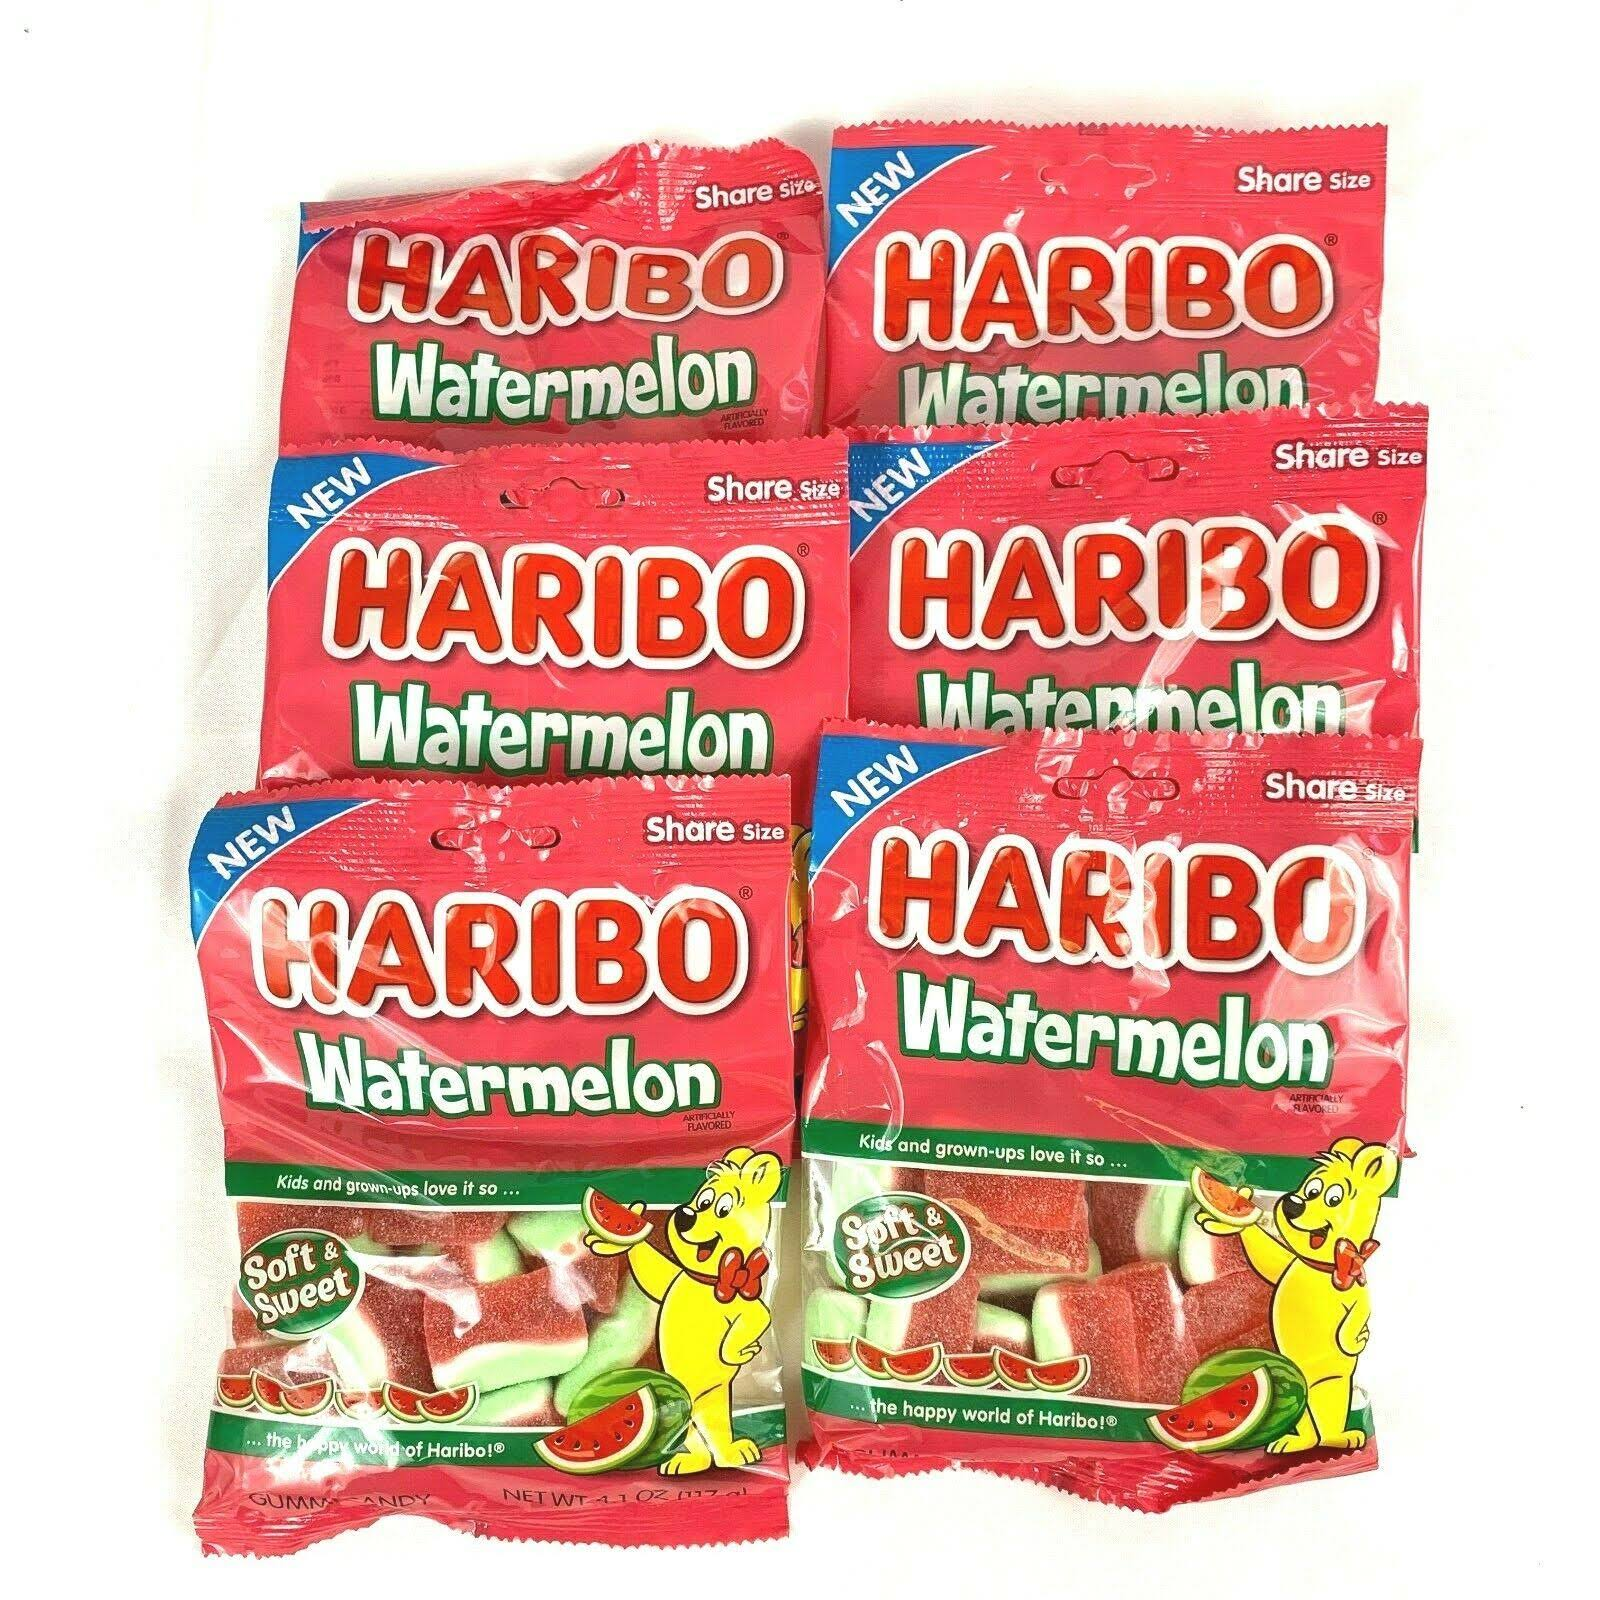 Haribo Gummi Candy, Watermelon, Share Size - 4.1 oz